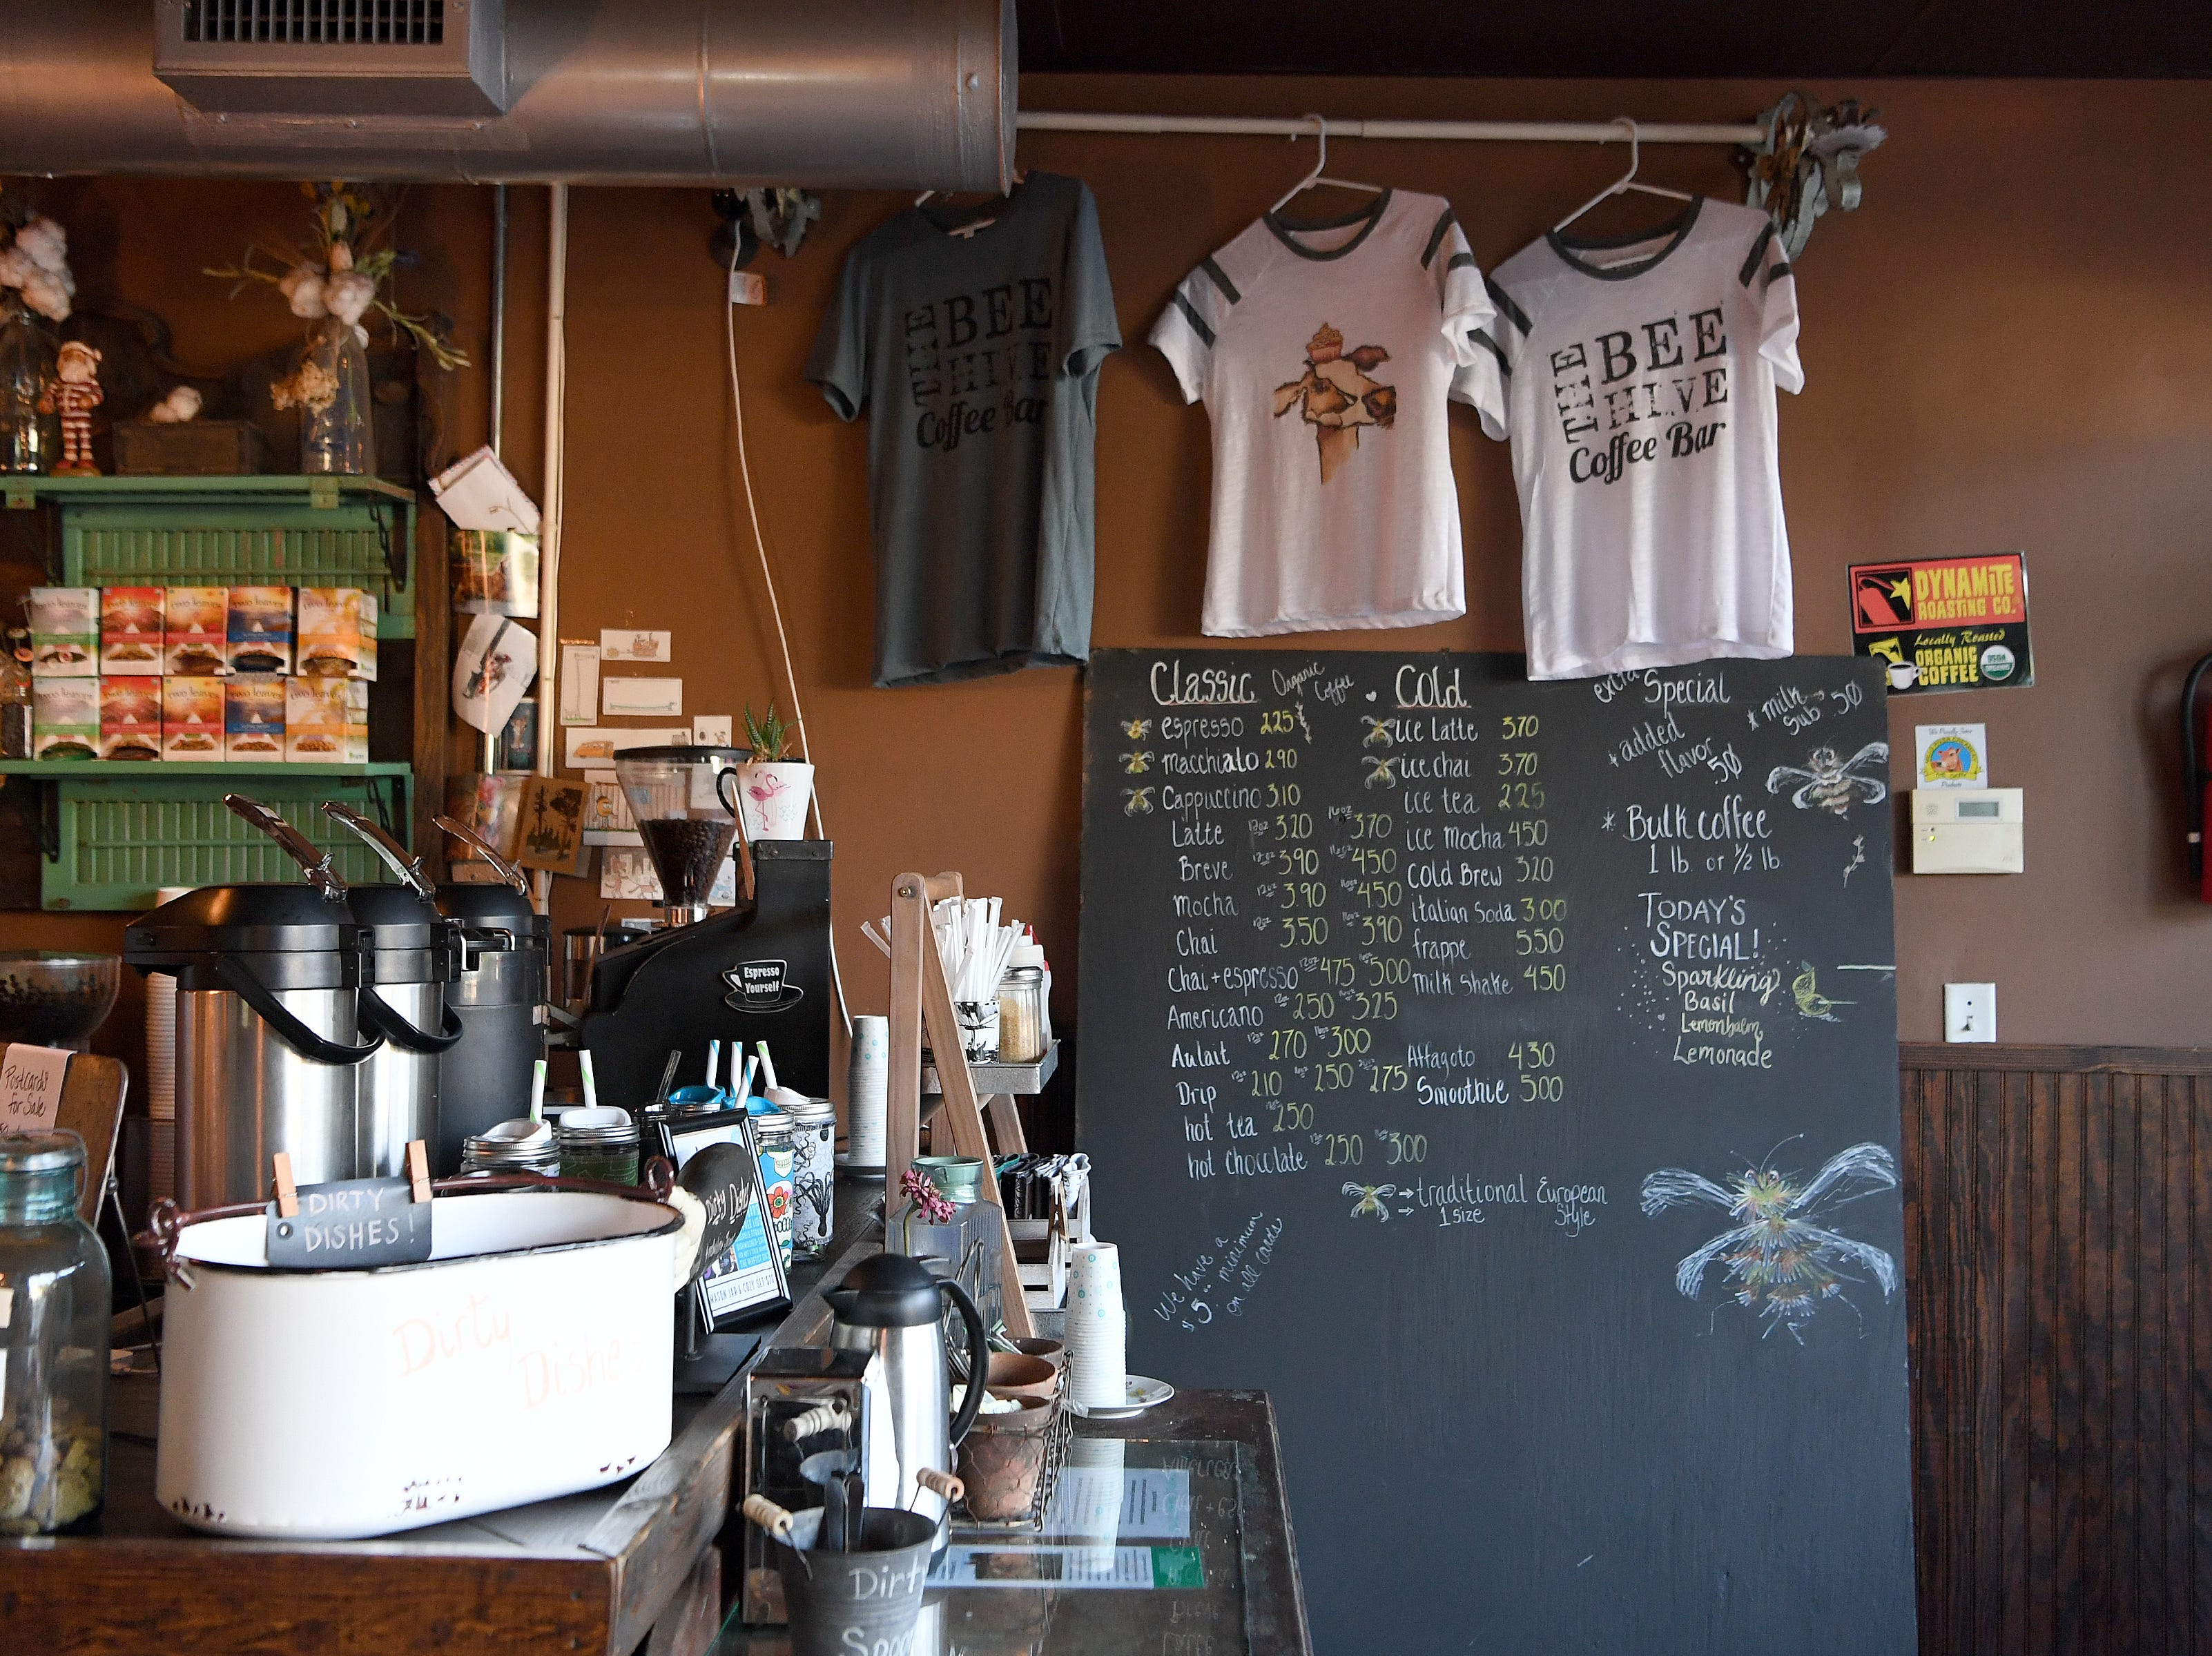 The eclectic decor of the Beehive Coffee Bar in Arden allows customers to forget its strip mall location and is at no loss for unique personal touches.